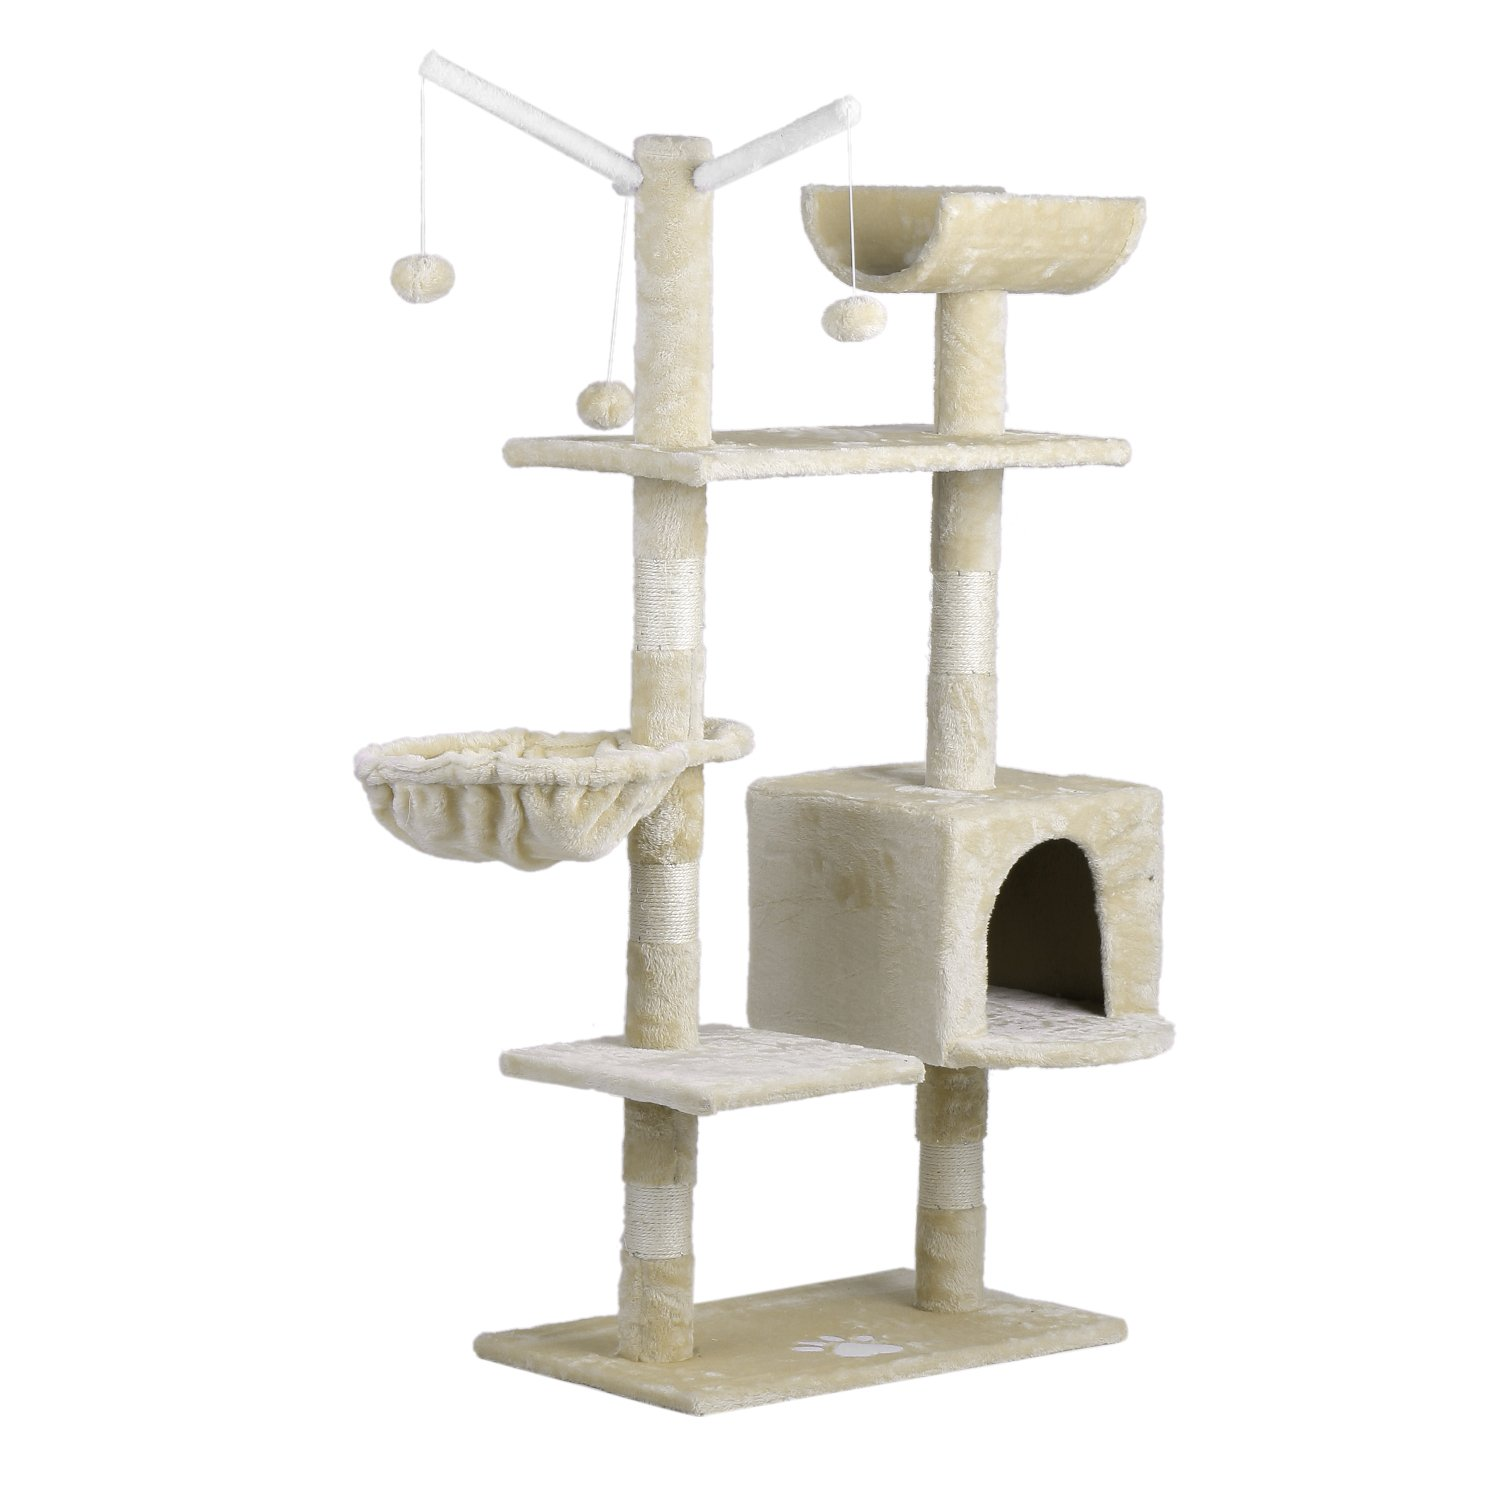 Happystore999 Cat'S Tree Tower Condo Hammock Scratcher Furniture Cat Jumping Toy Premium Three-Layers Pets Kitten House Jumping Toys Beige